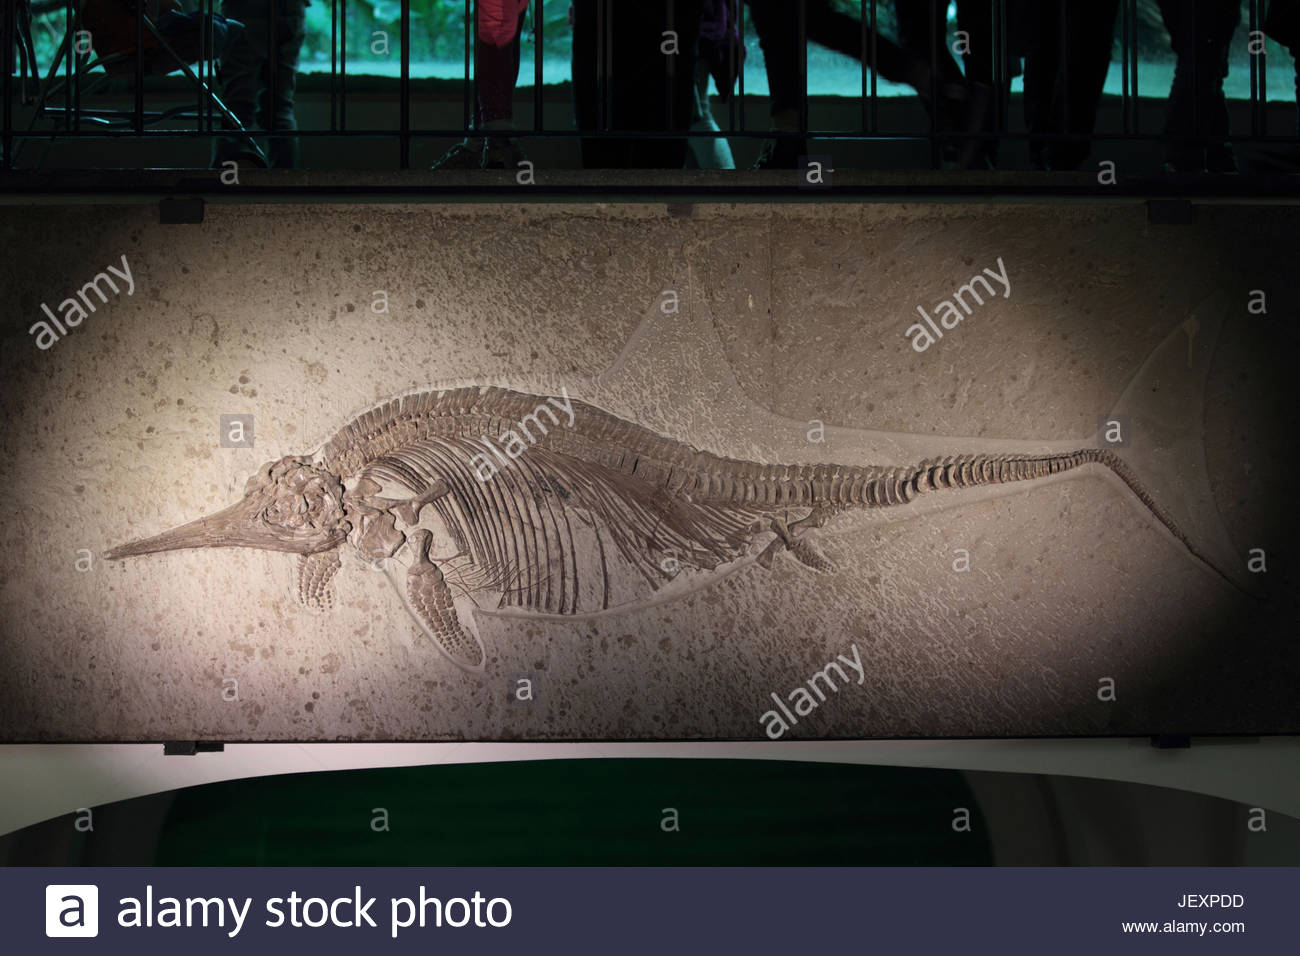 Fossil of Stenopterygius, formerly ichthyosaurus, an extinct genus of thunnosaur ichthyosaur known from Europe. - Stock Image